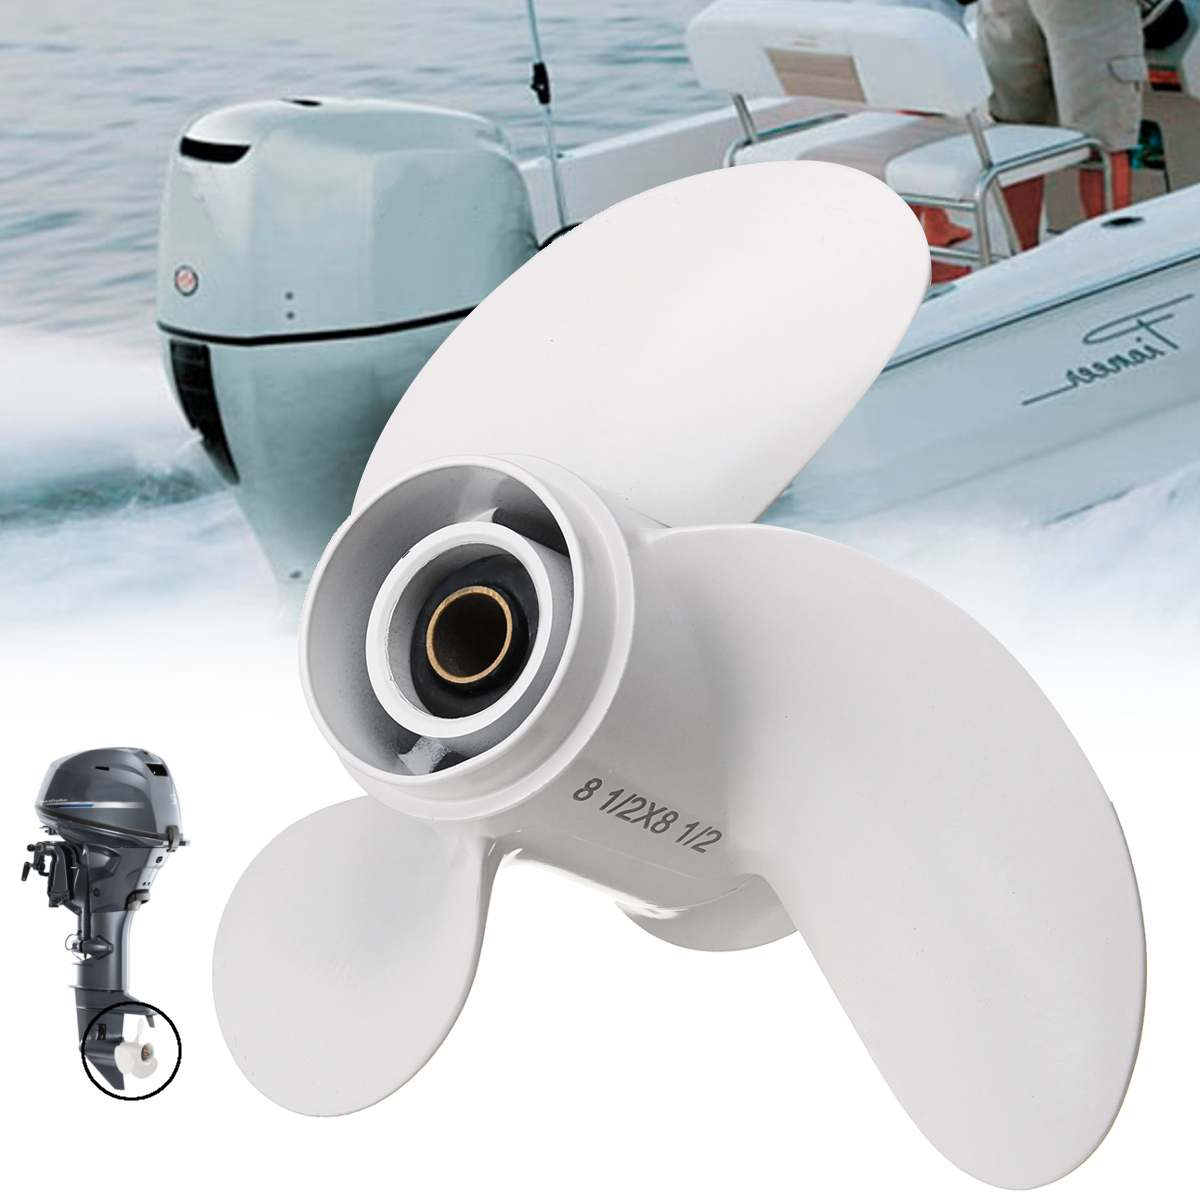 Aluminum Alloy 8 1/2 X 8 1/2 Boat Outboard Propeller For Yamaha 6-8HP 6G1-45941-00-EL 3 Blade 7 Spline Tooth Marine Propellers